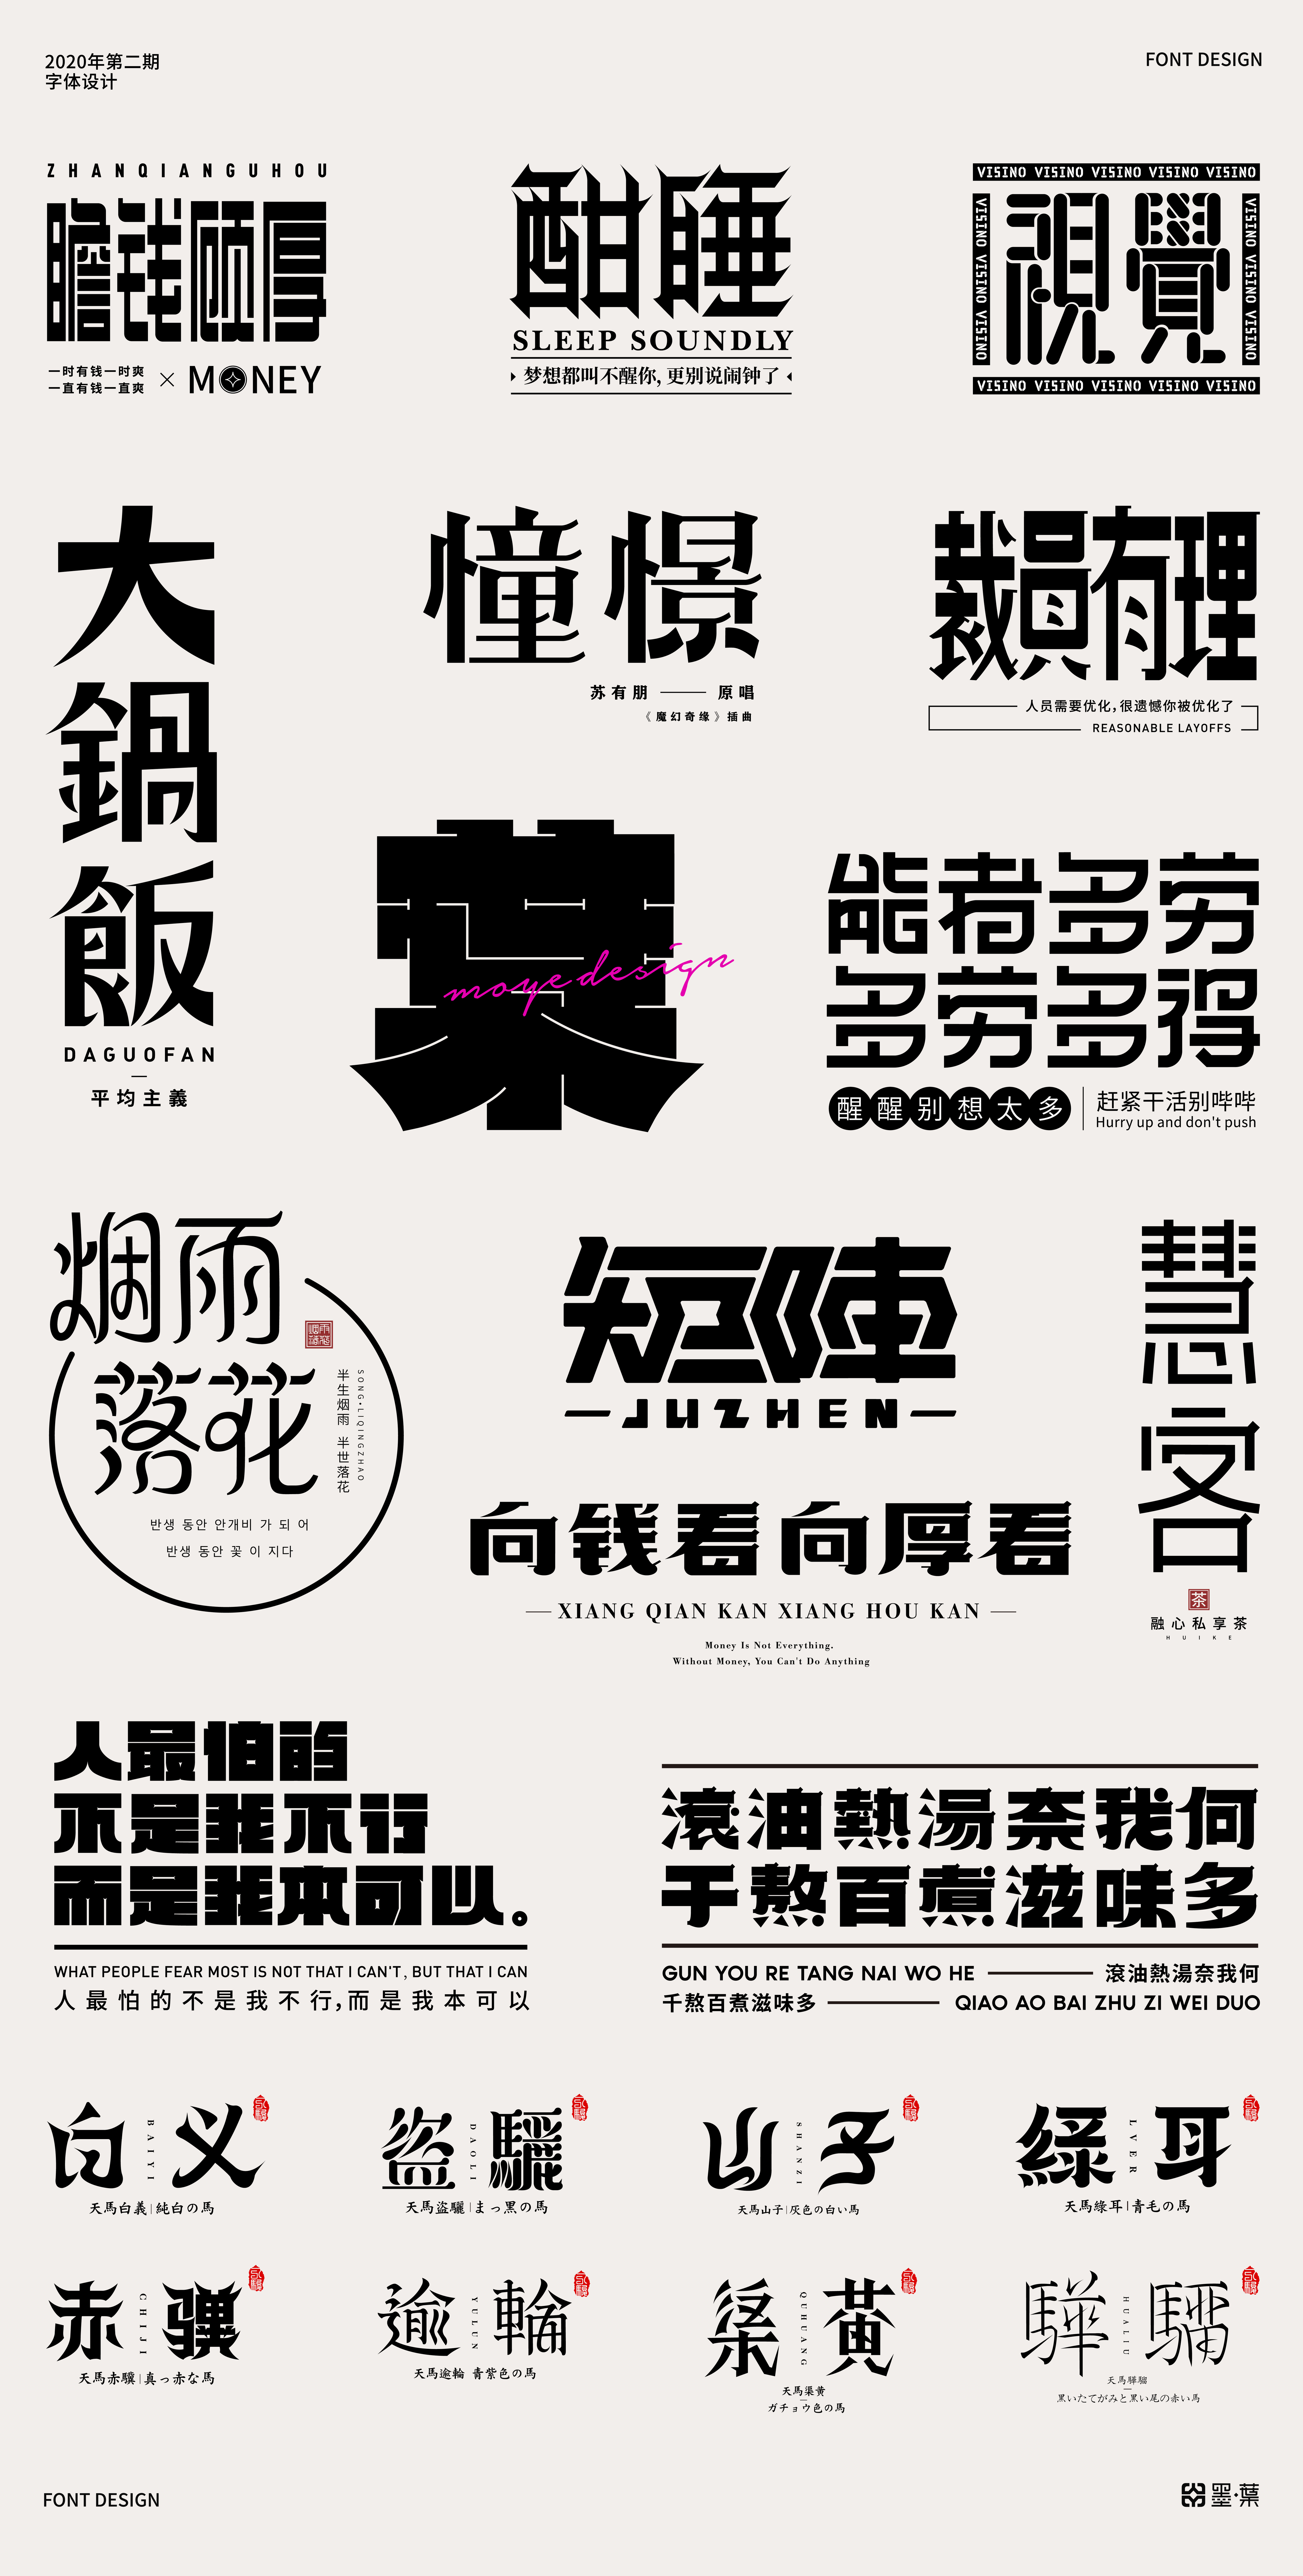 Interesting Chinese Creative Font Design-Try to present fonts in different strokes and ways.